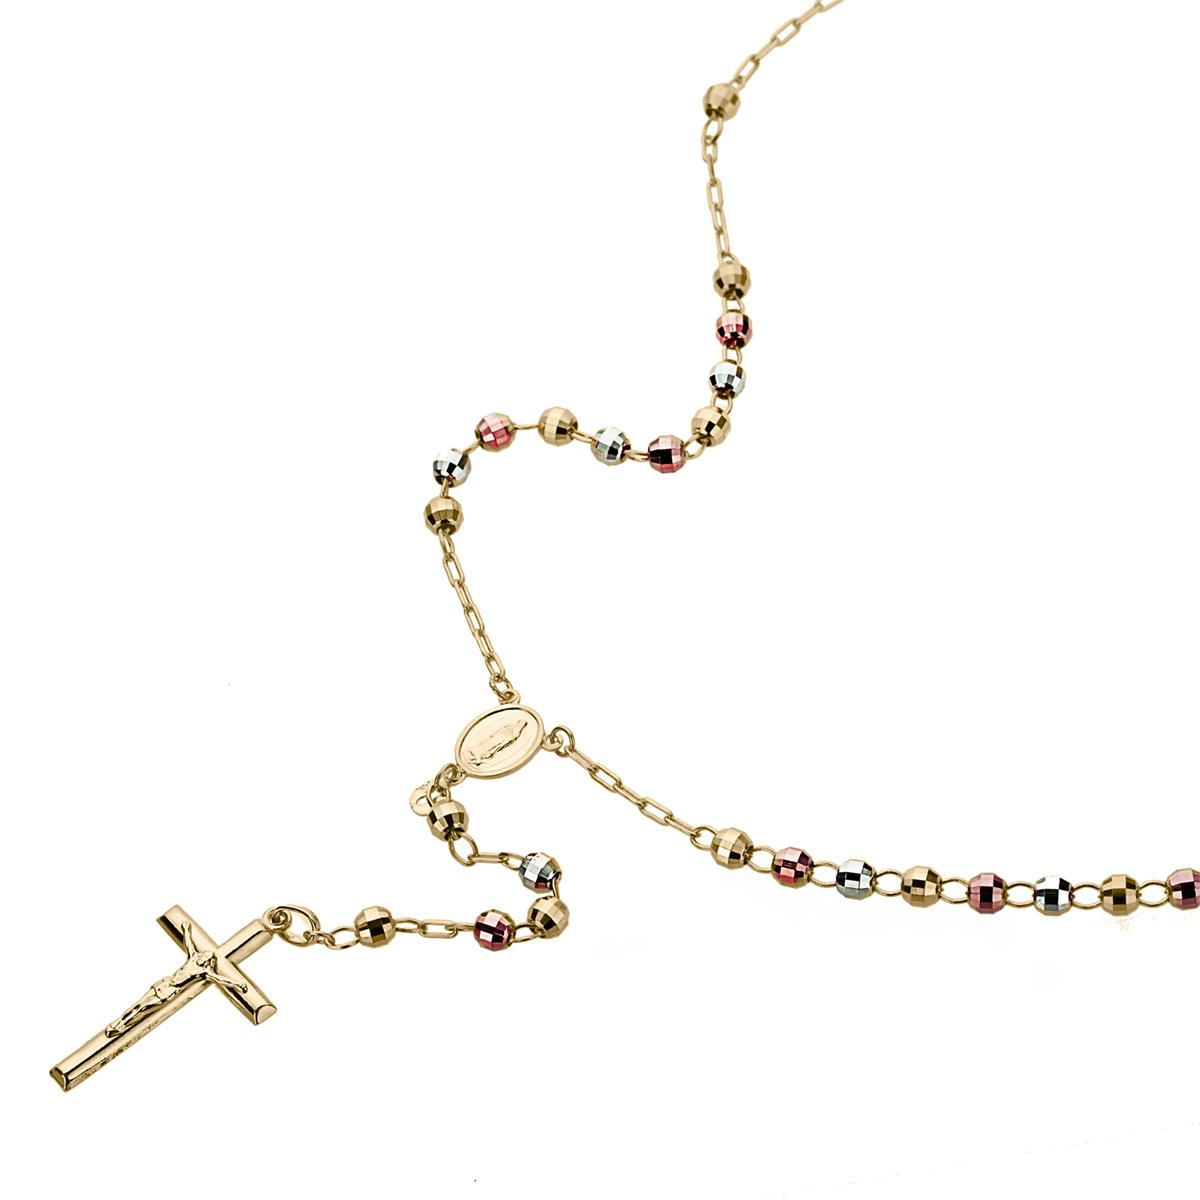 14K Gold Tri-color, Yellow or White Gold Chain 3mm DC Bead Rosary Chain Necklace (16, 18, 20, 24 Inches), 20''